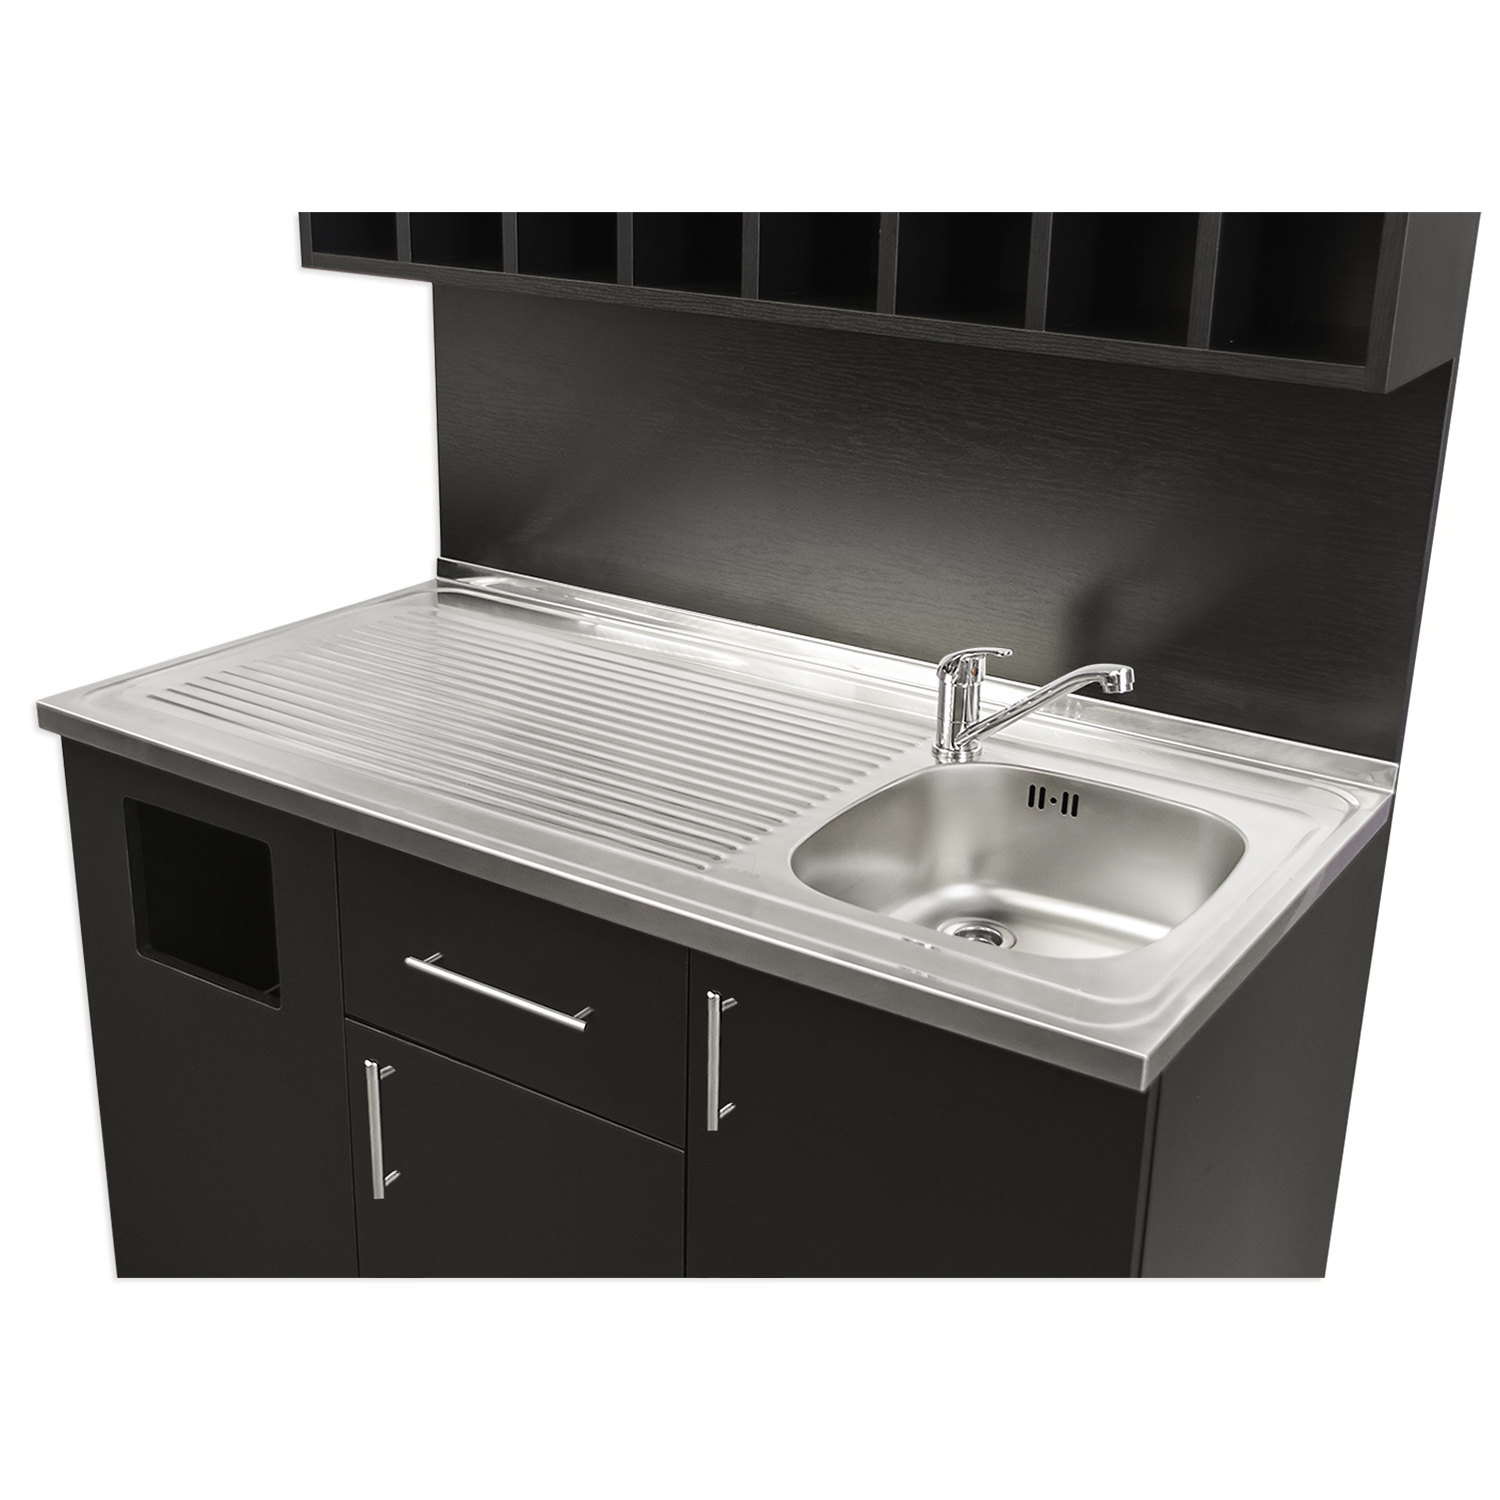 4 color mixing station with sink and stainless steel counter